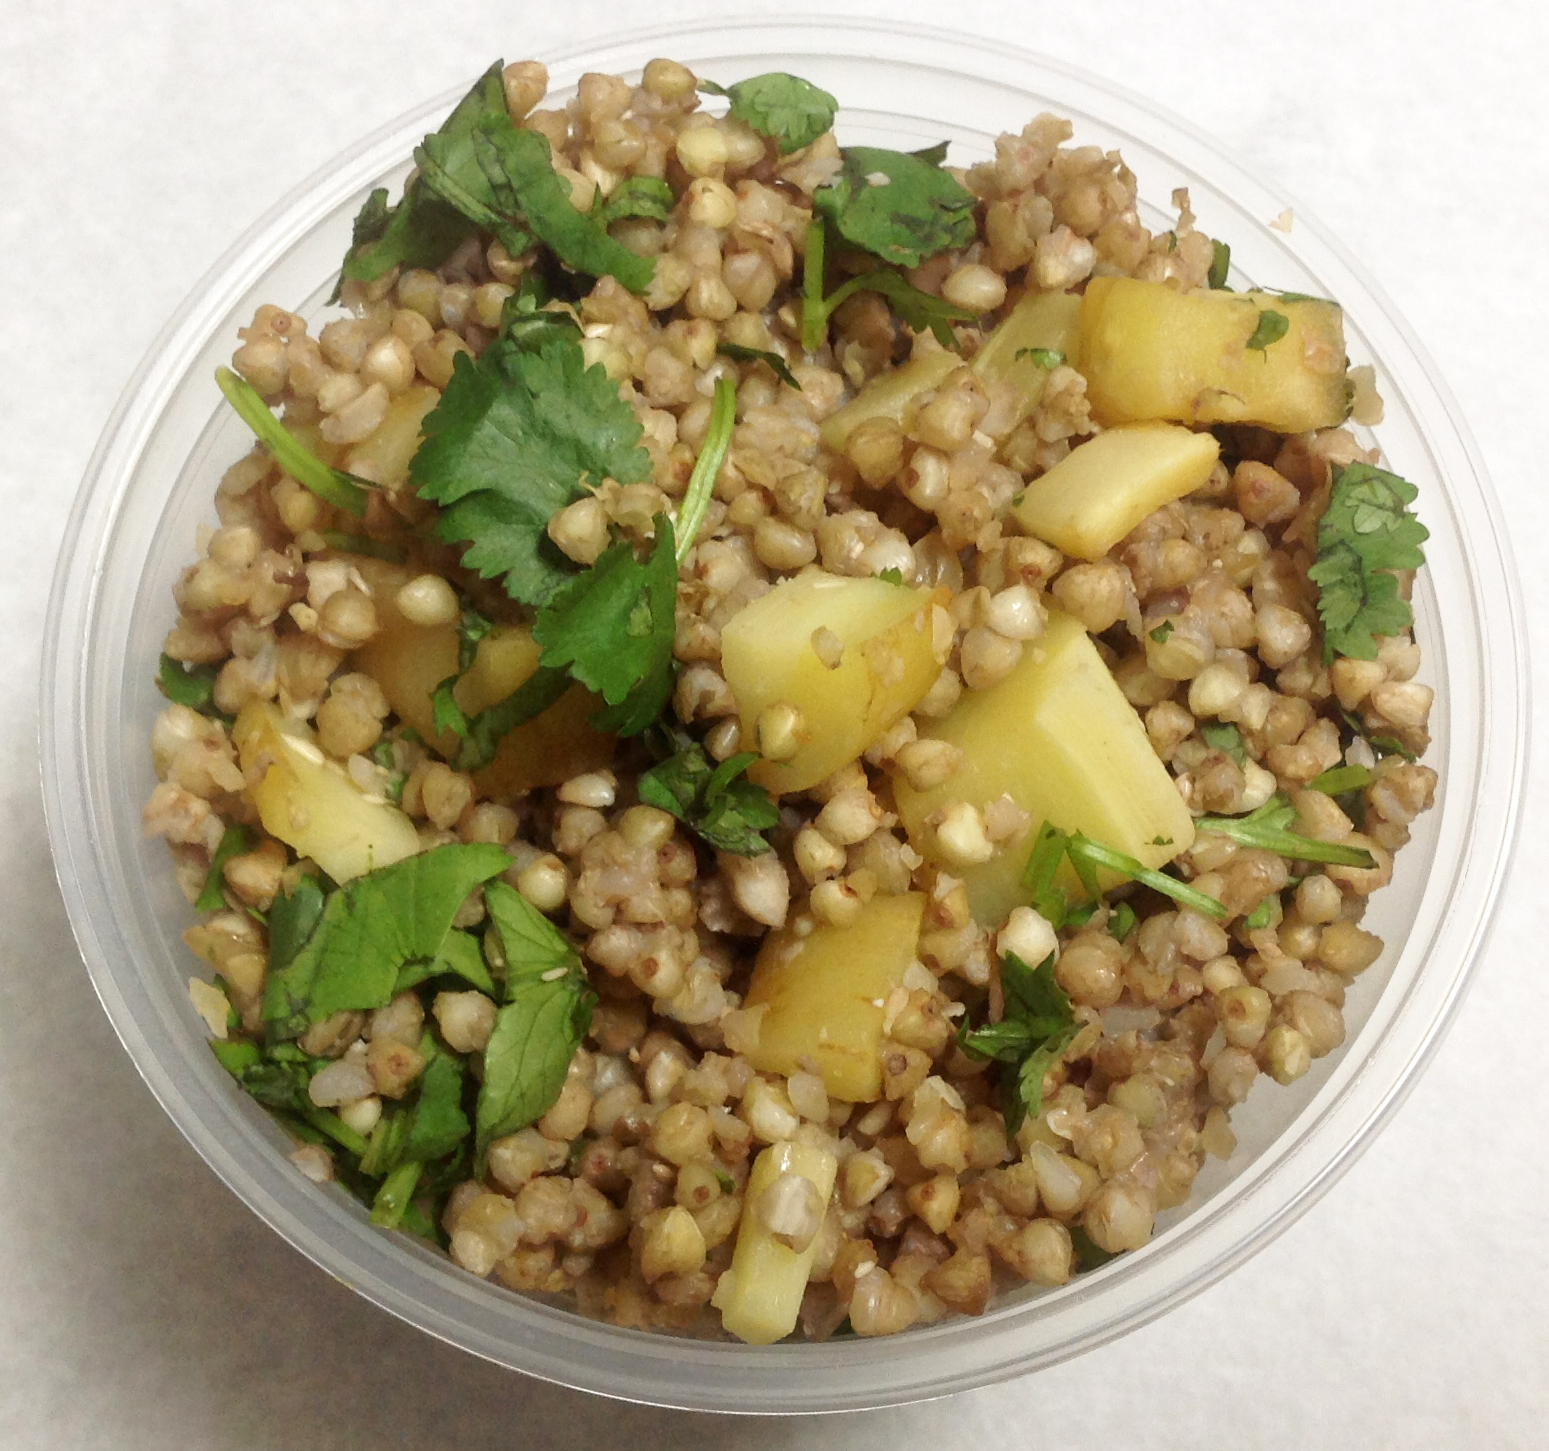 Buckwheat salad with parsnips and cilantro.